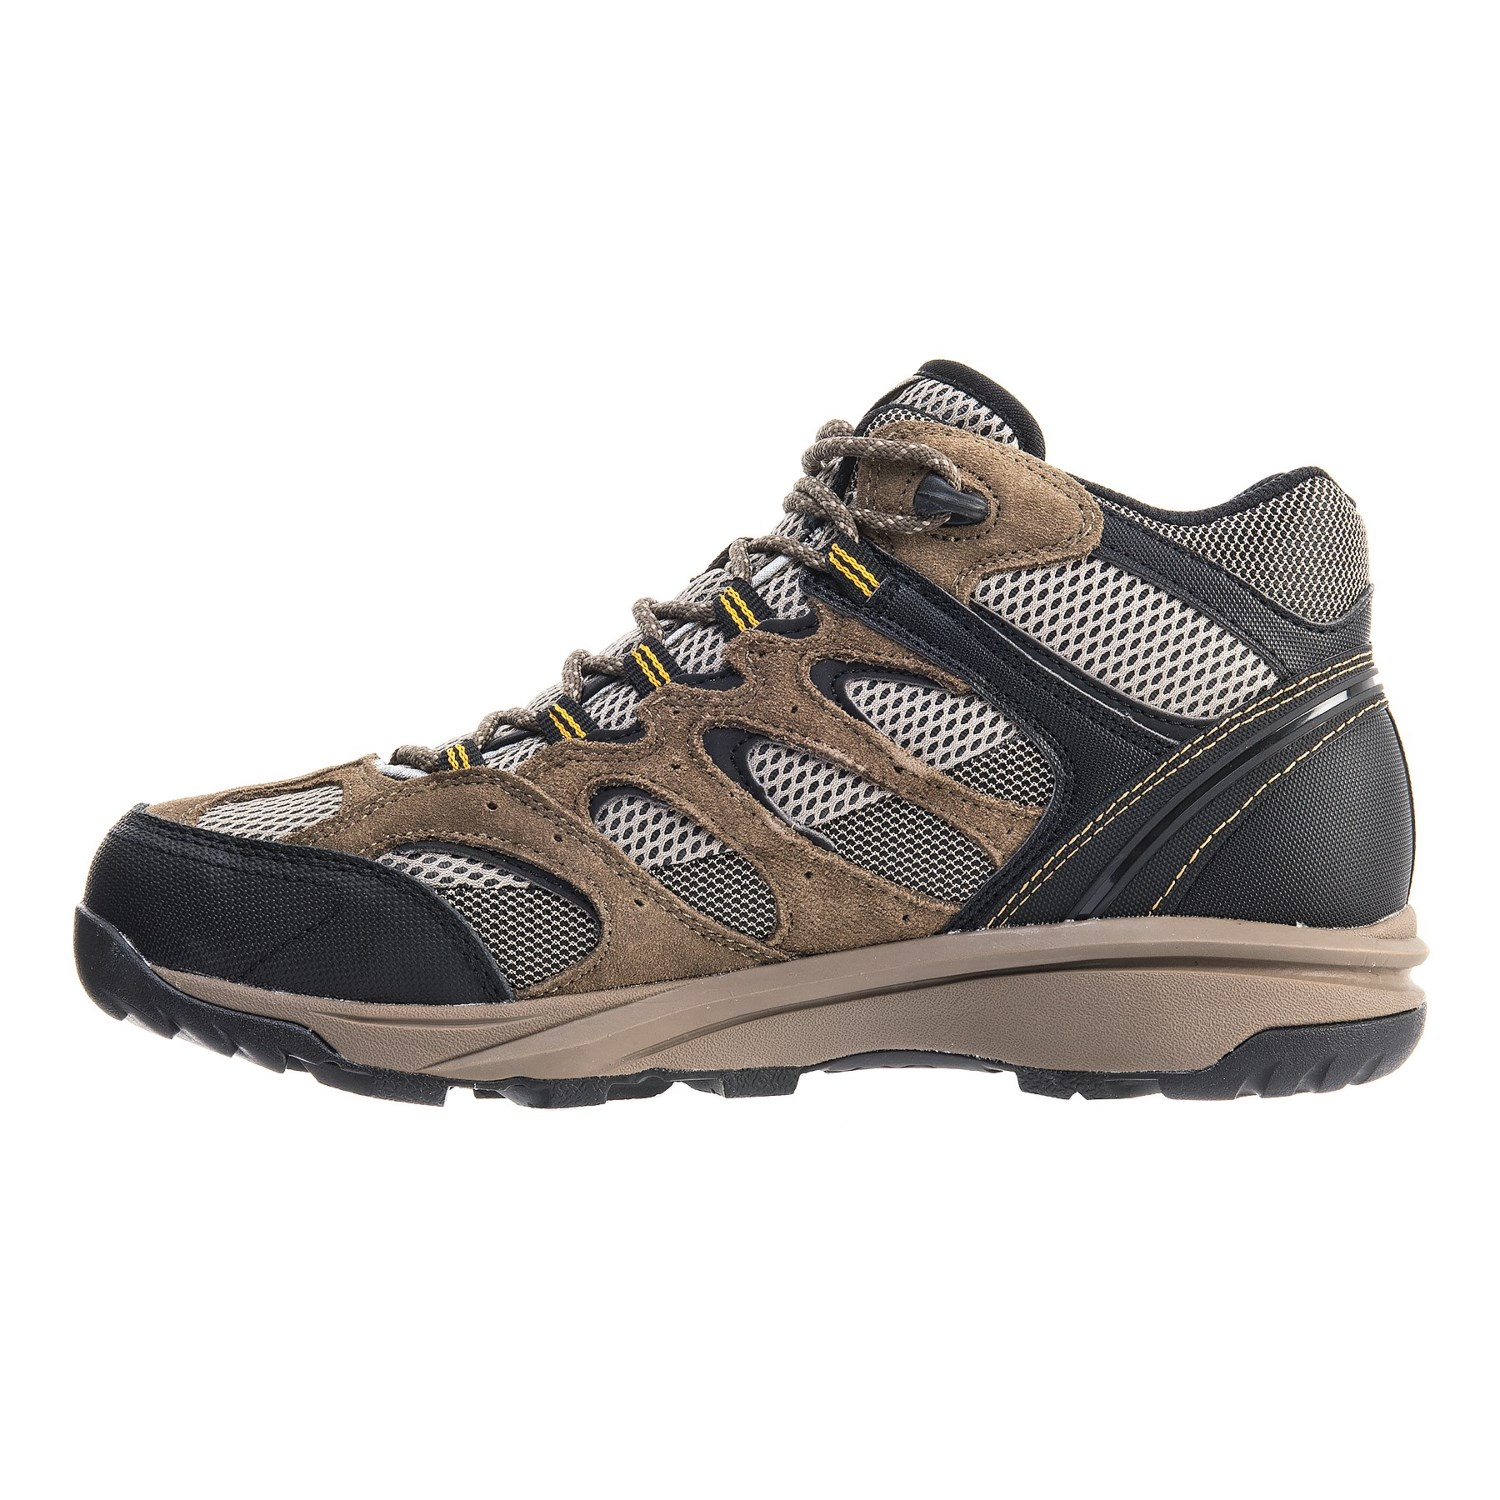 HiTec Trail Blazer Mid Hiking Boots  Waterproof For Men